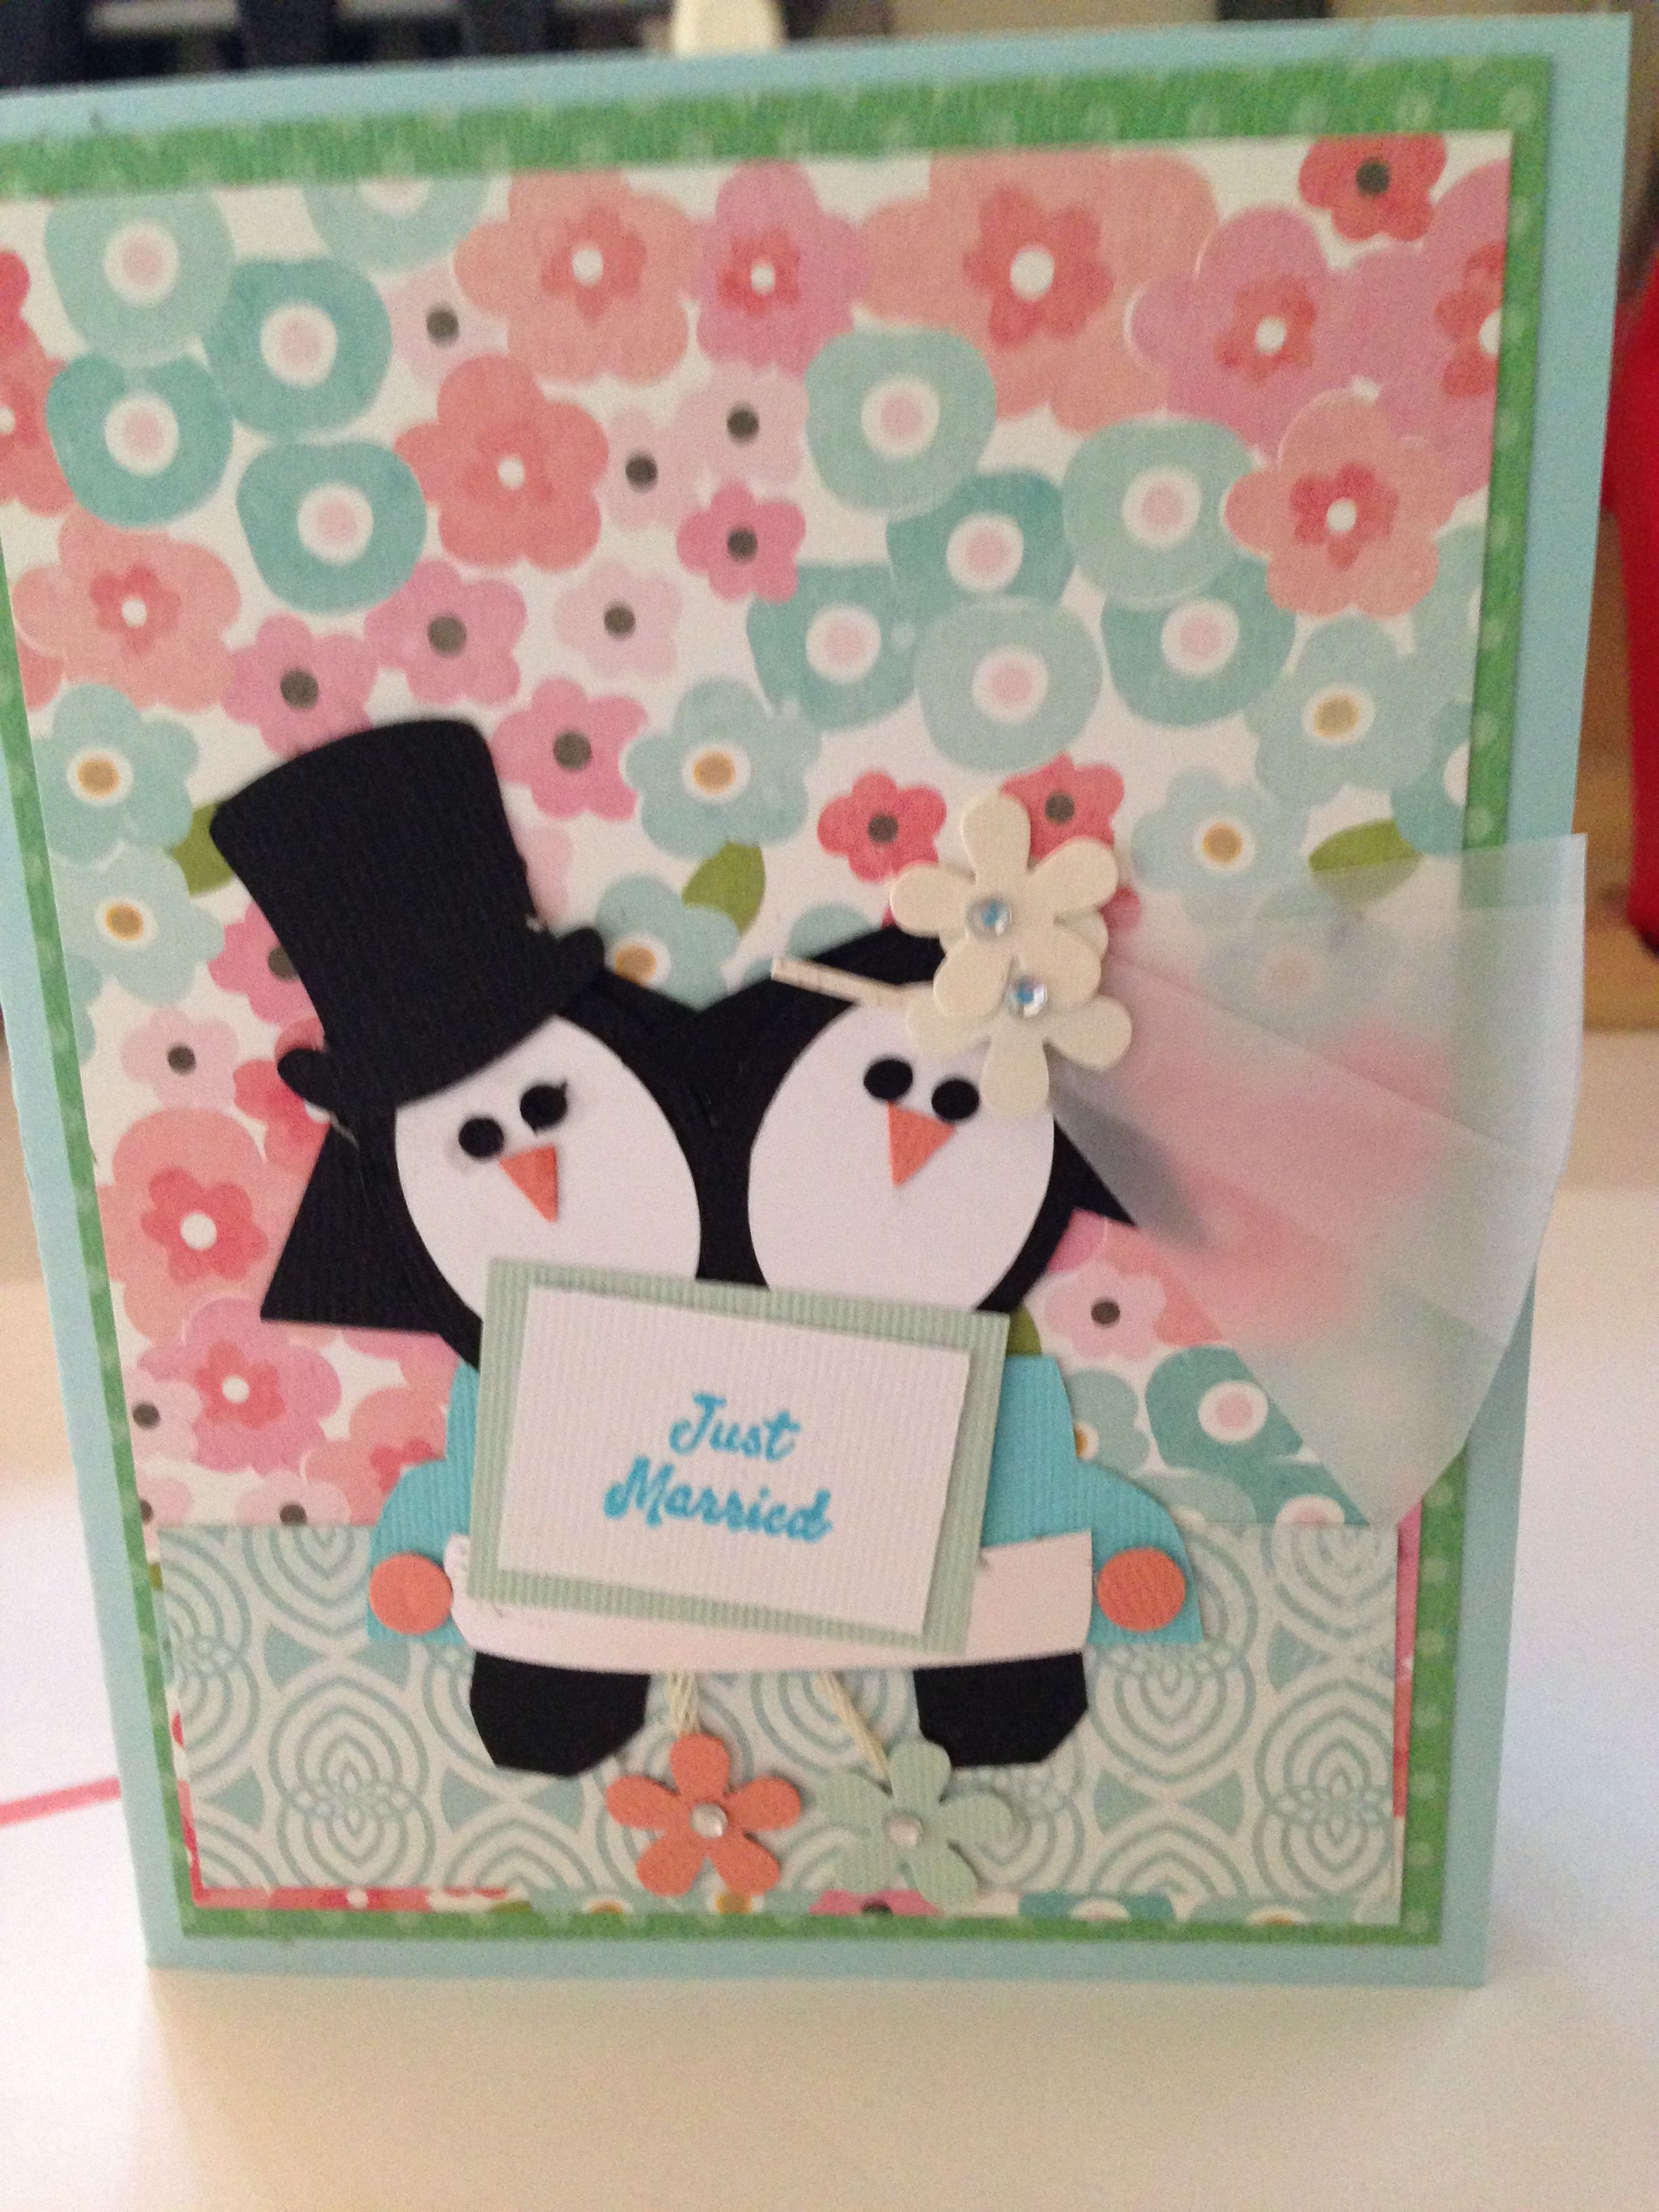 another cute wedding card